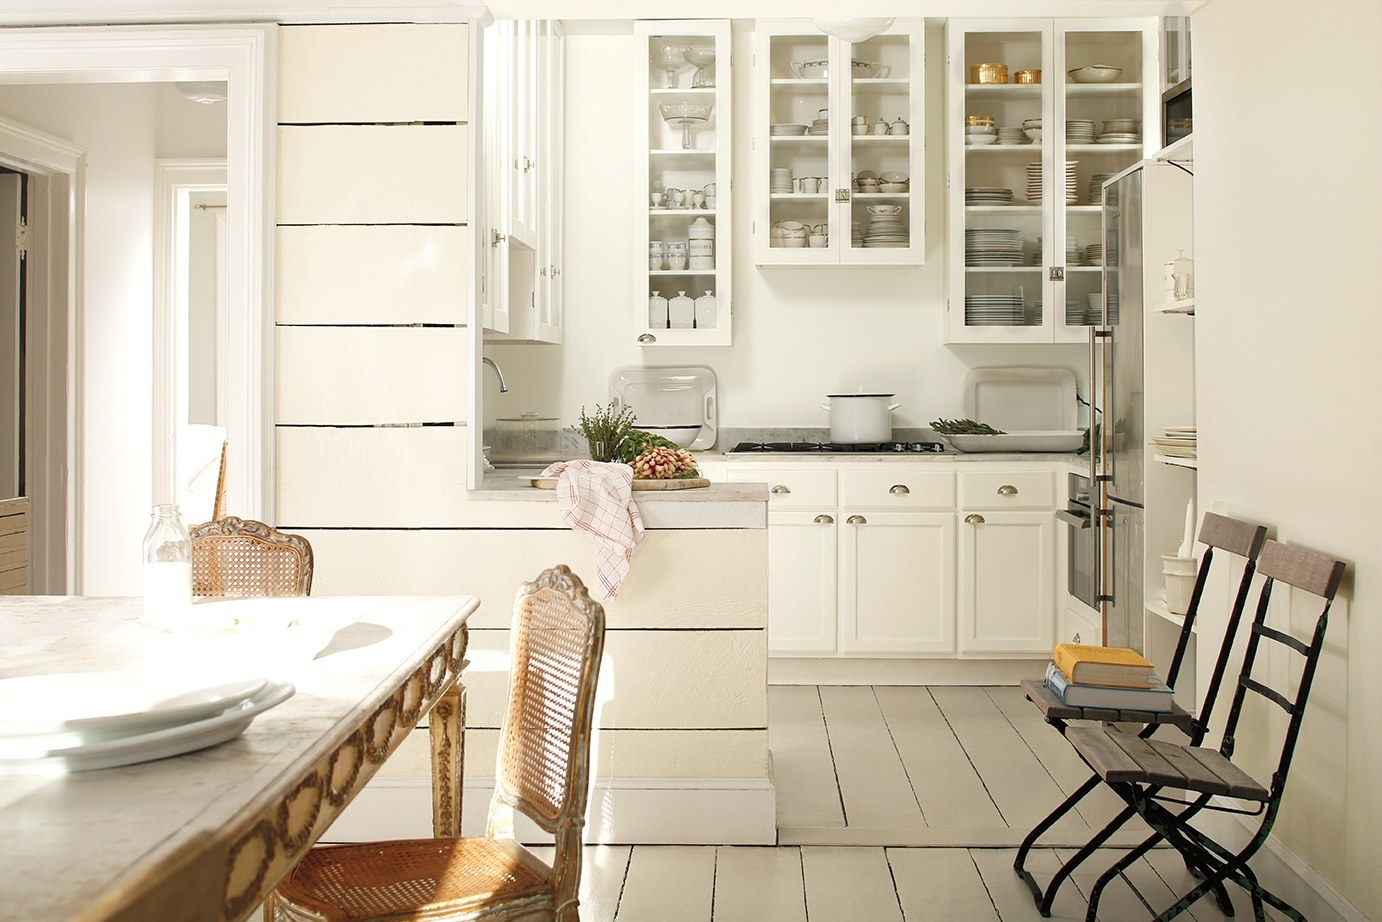 Benjamin Moore Ivory White Kitchen Cabinets Kitchen Cabinet